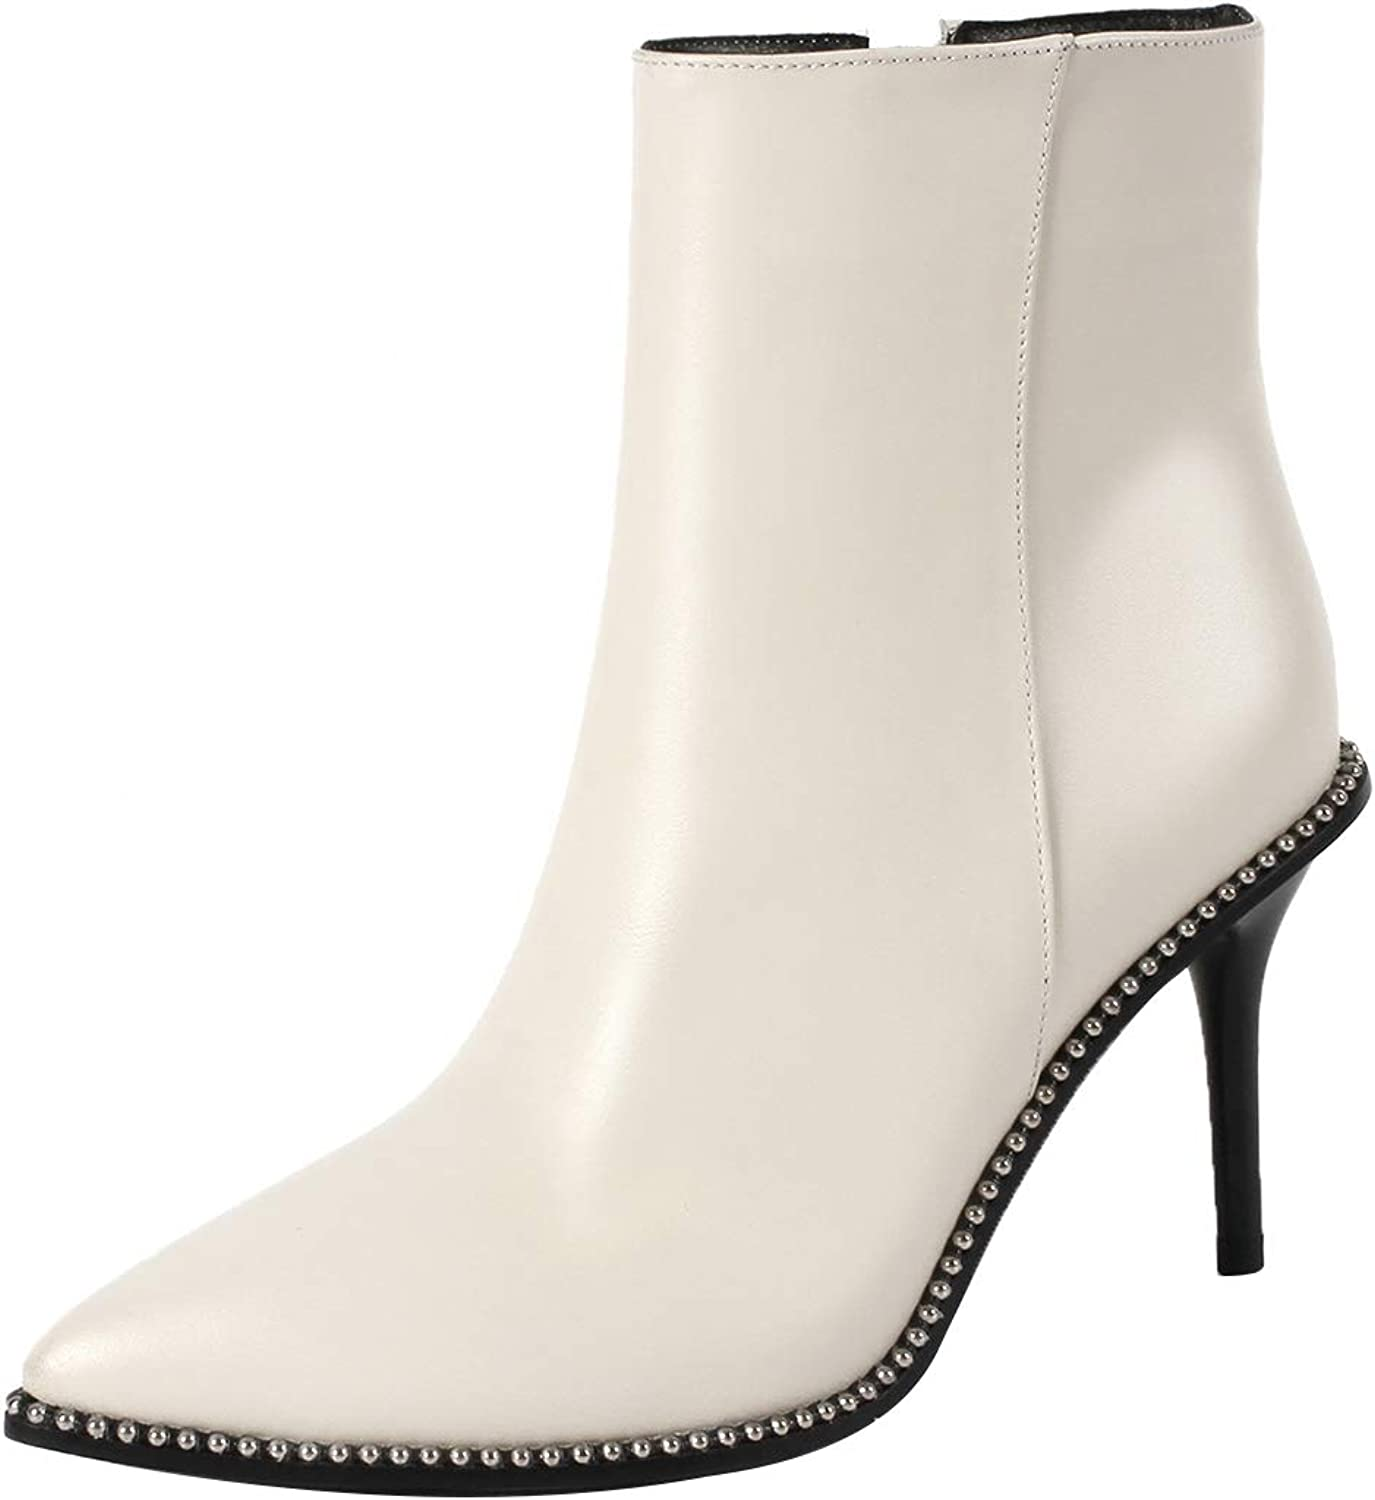 Eithy Women's Shacco Stiletto Ankle-high Zipper Leather Boots